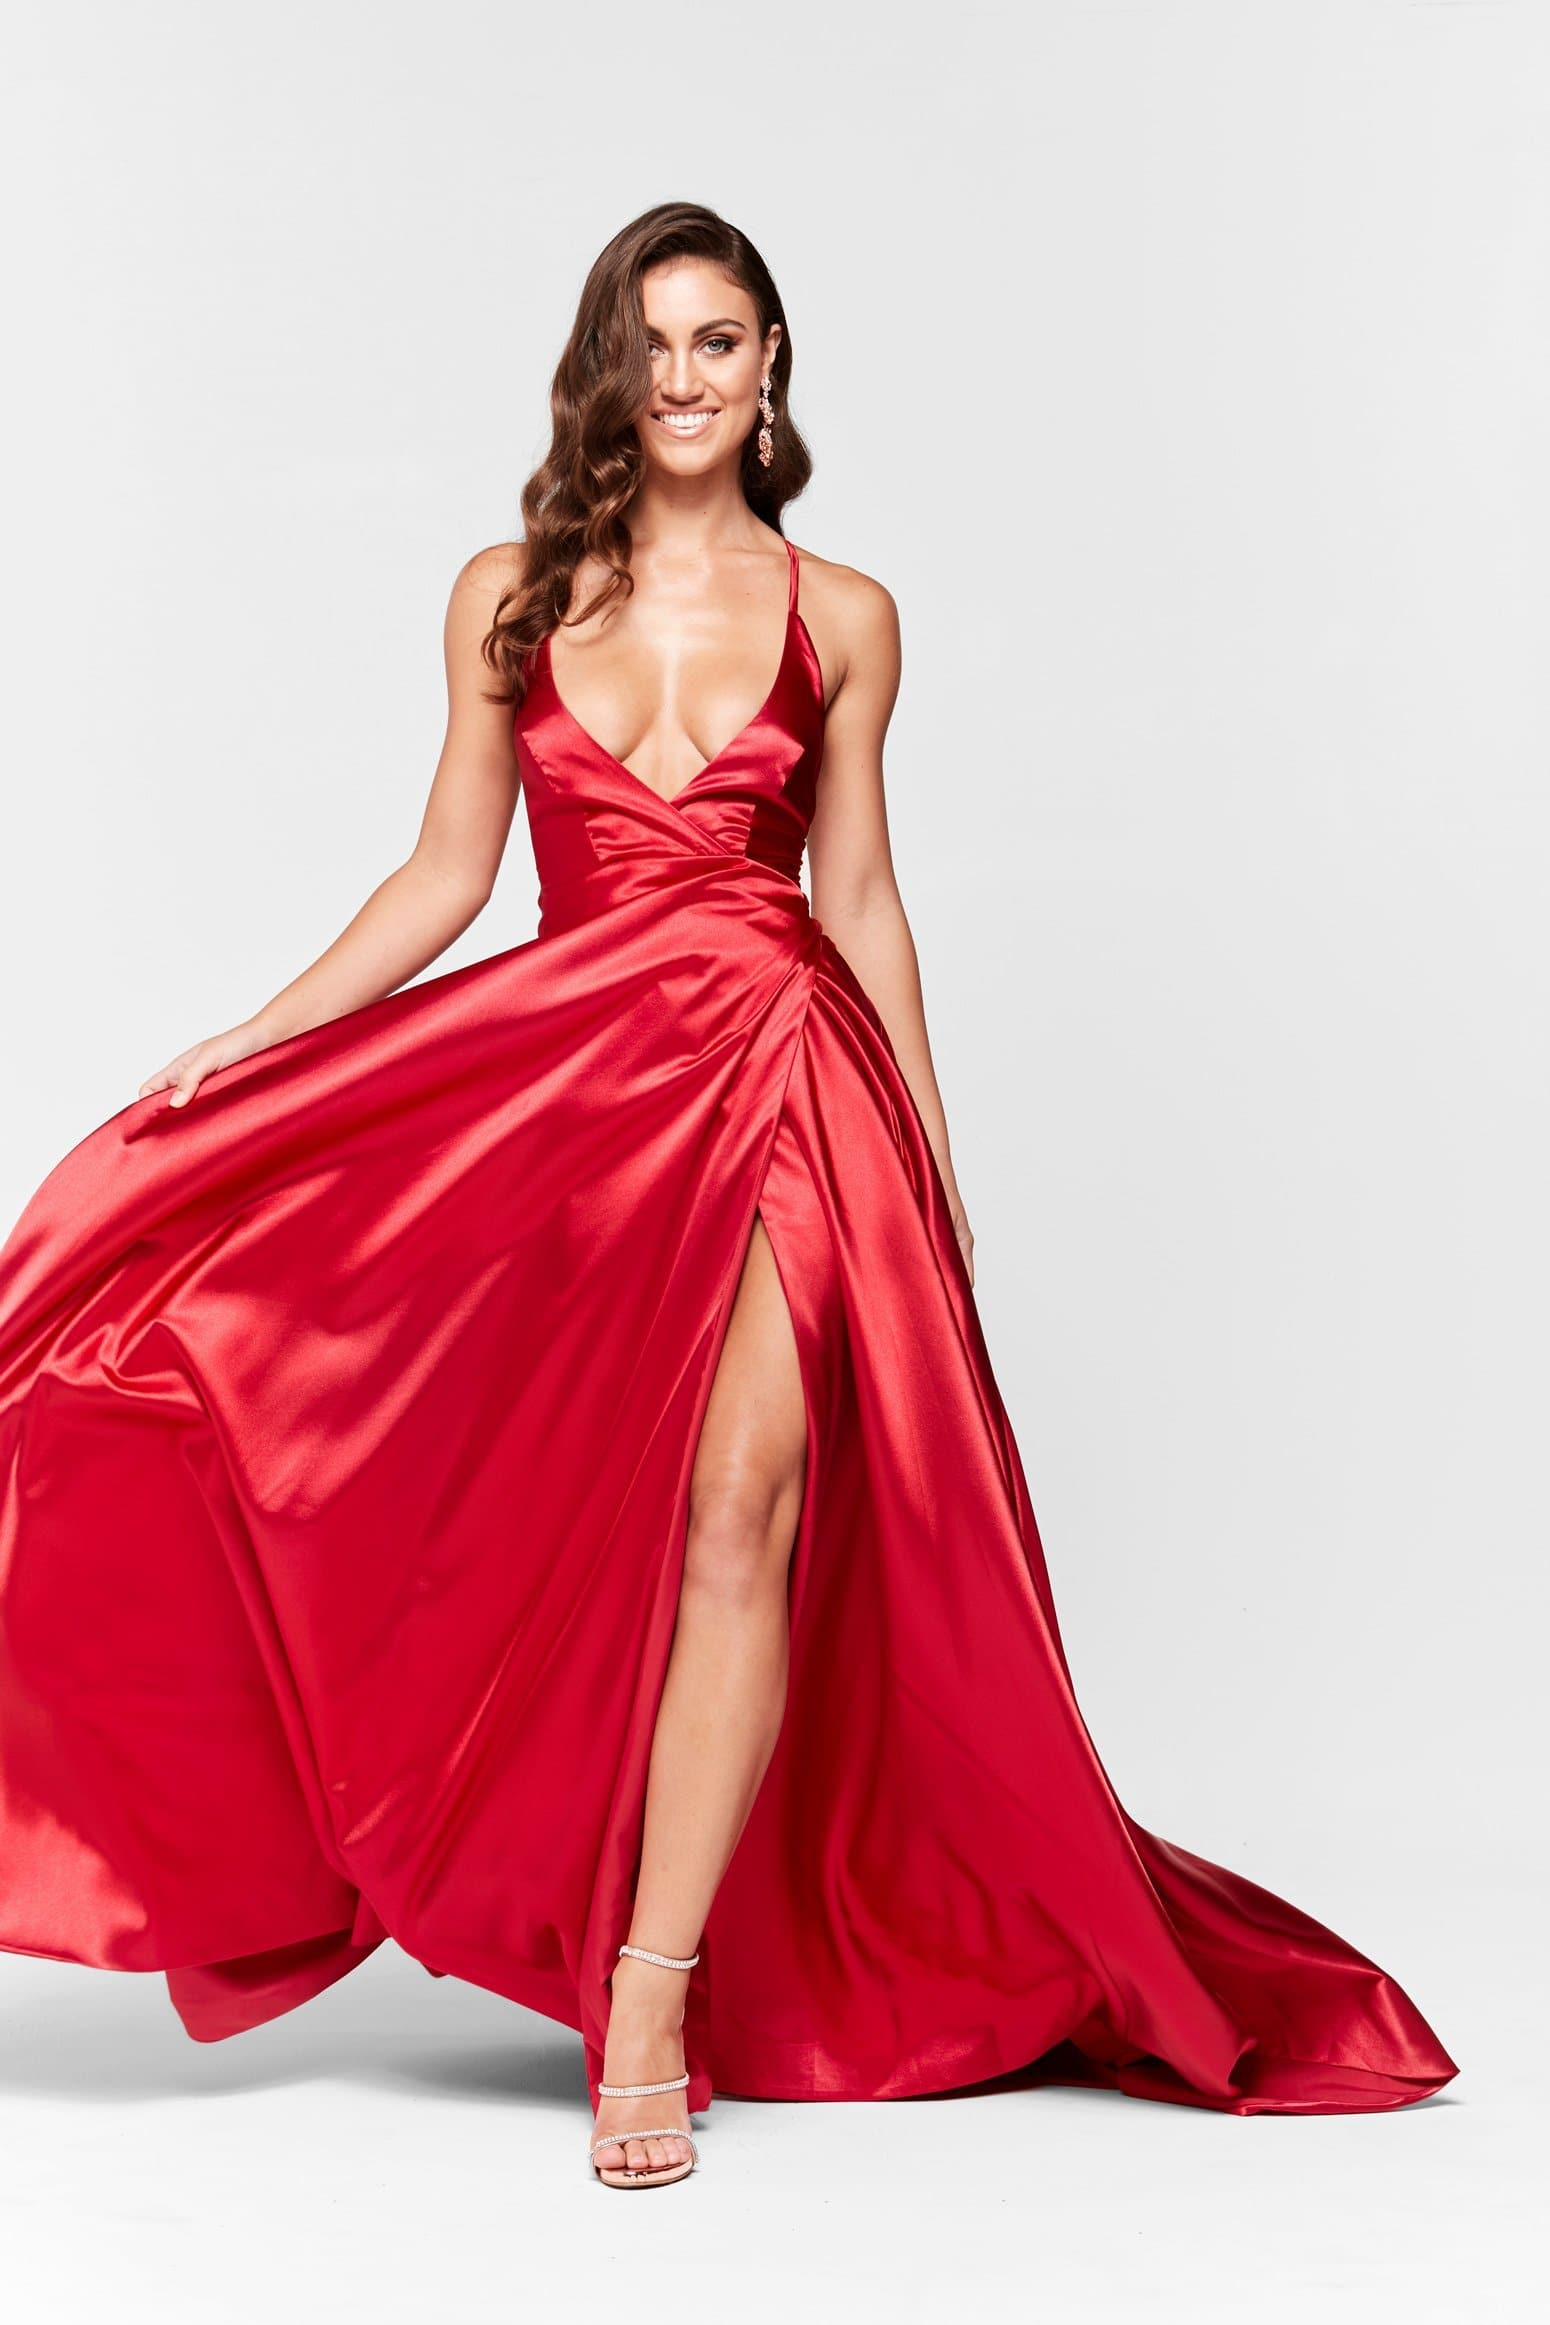 A&N Dimah - Deep Red Satin Gown with Lace Up Back and Front Slit ...